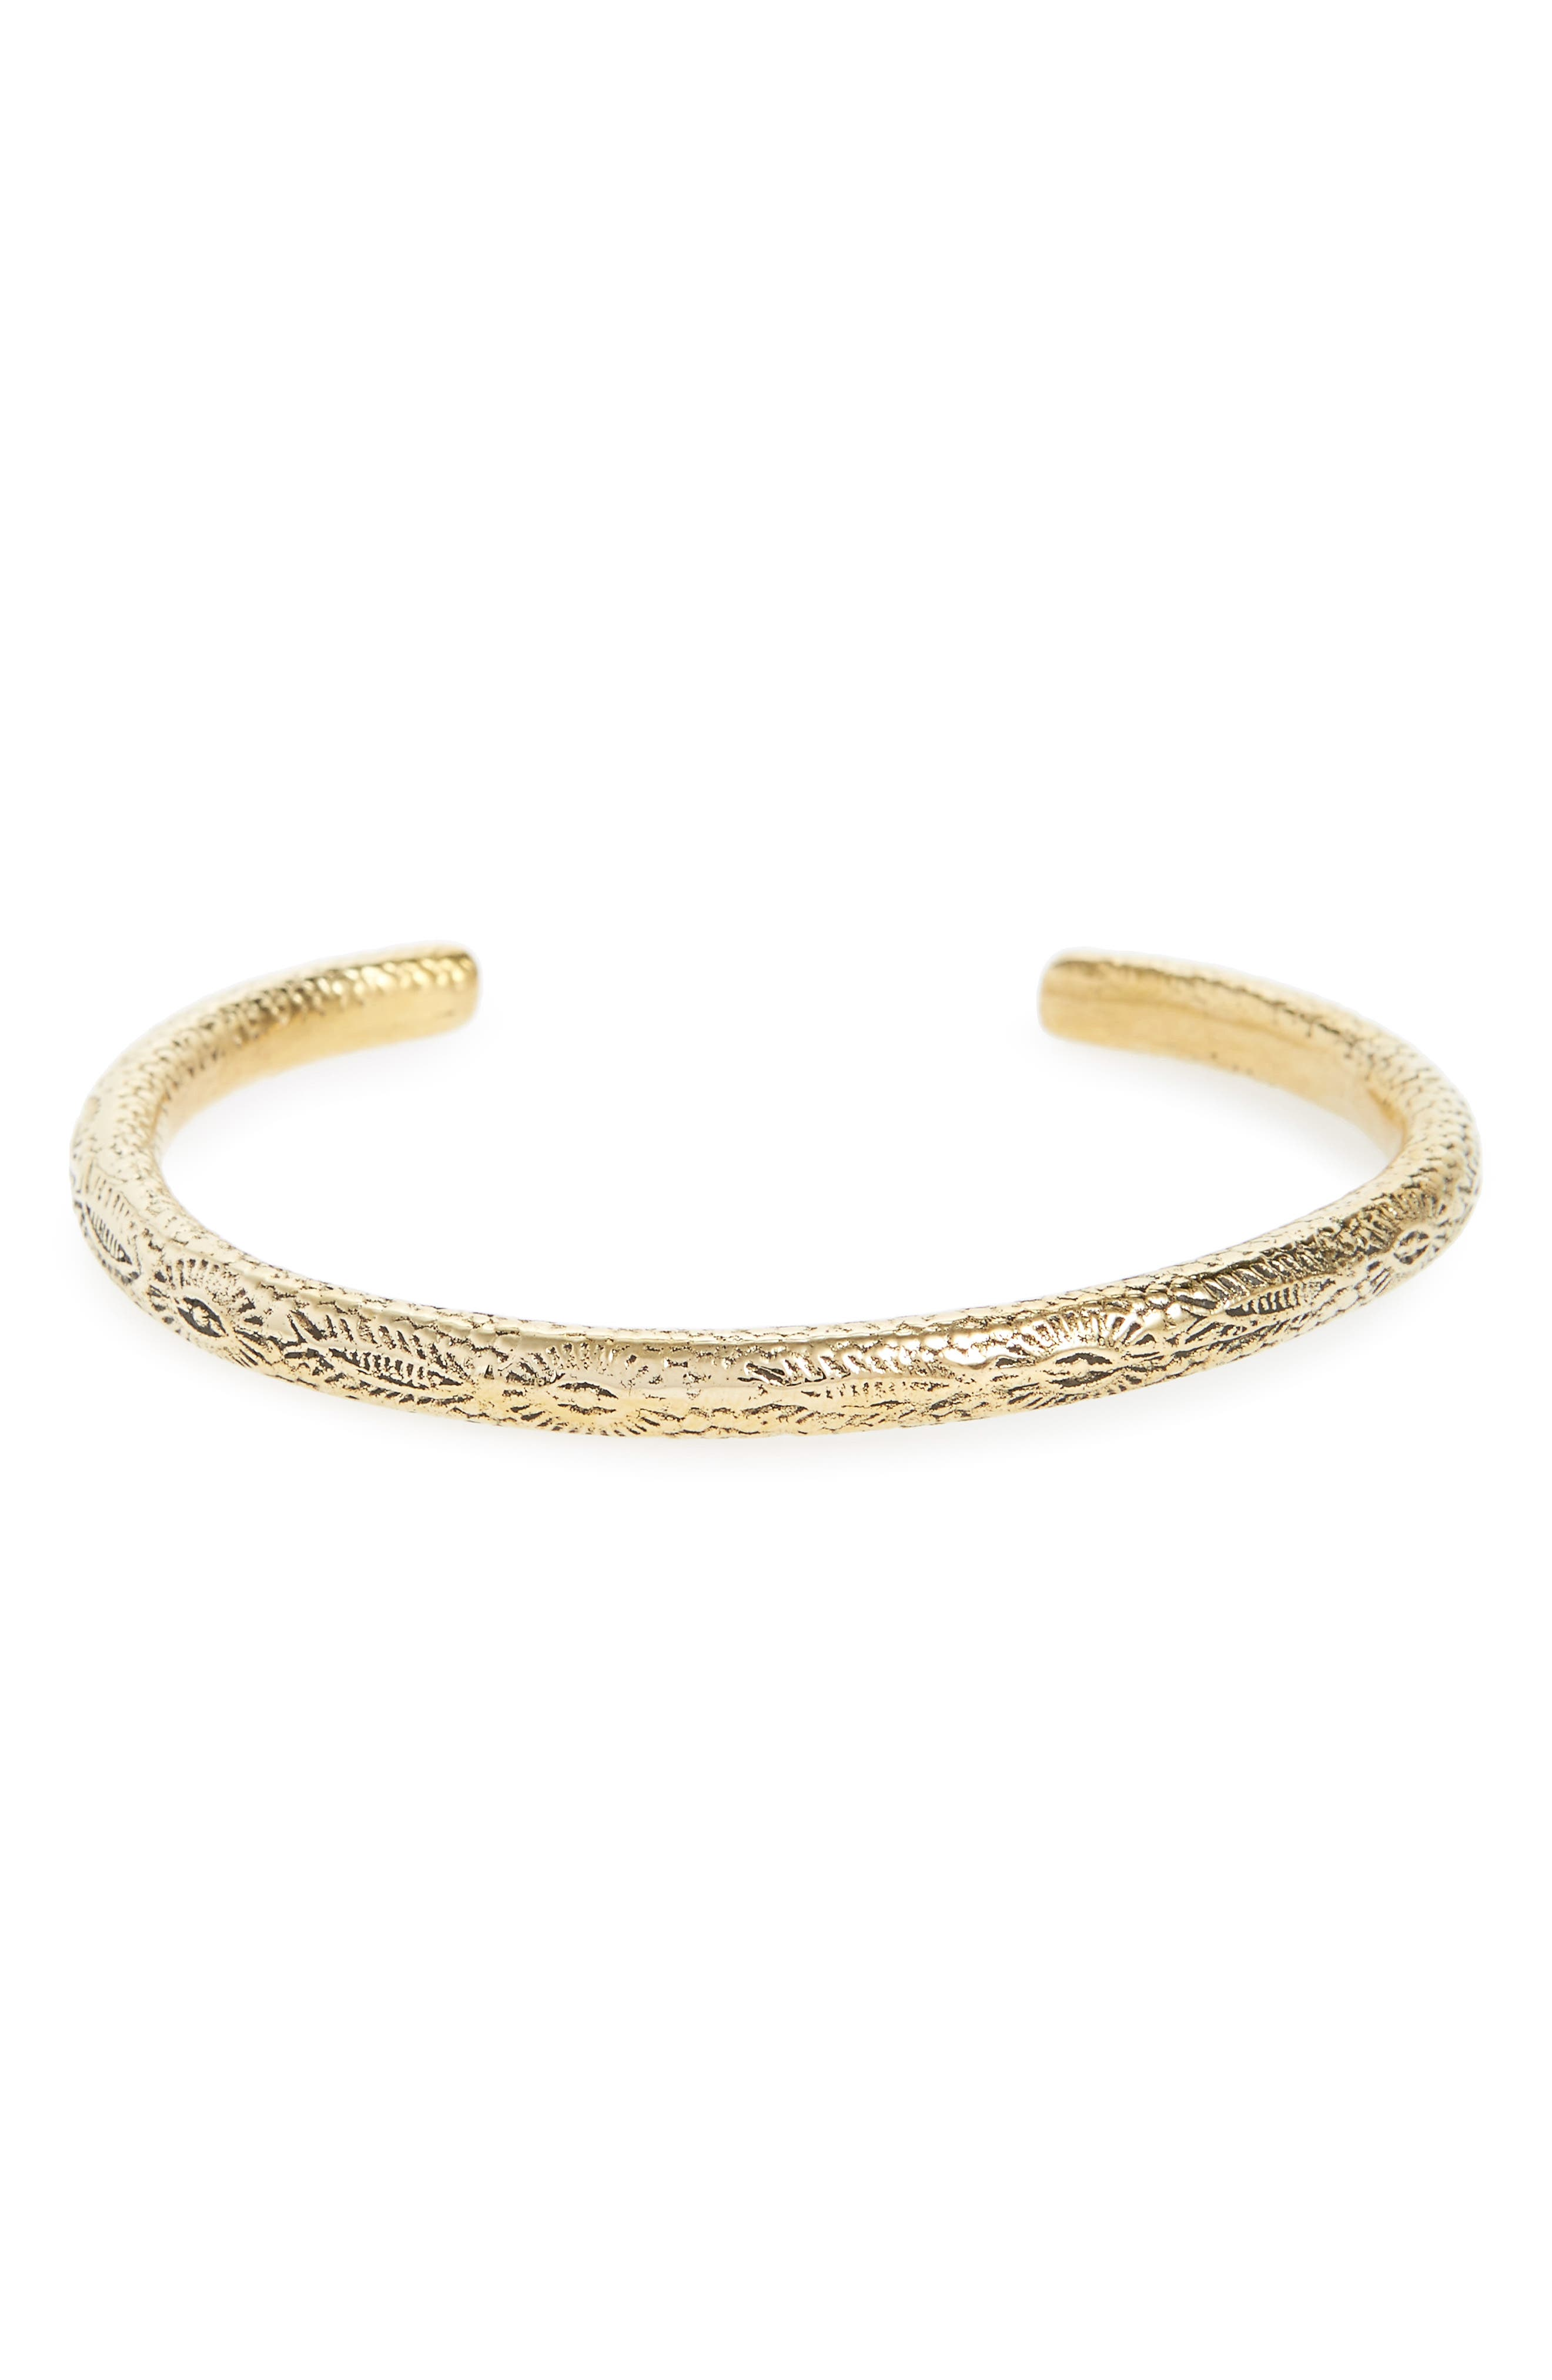 Third Eye Brass Cuff Bracelet,                         Main,                         color, 710